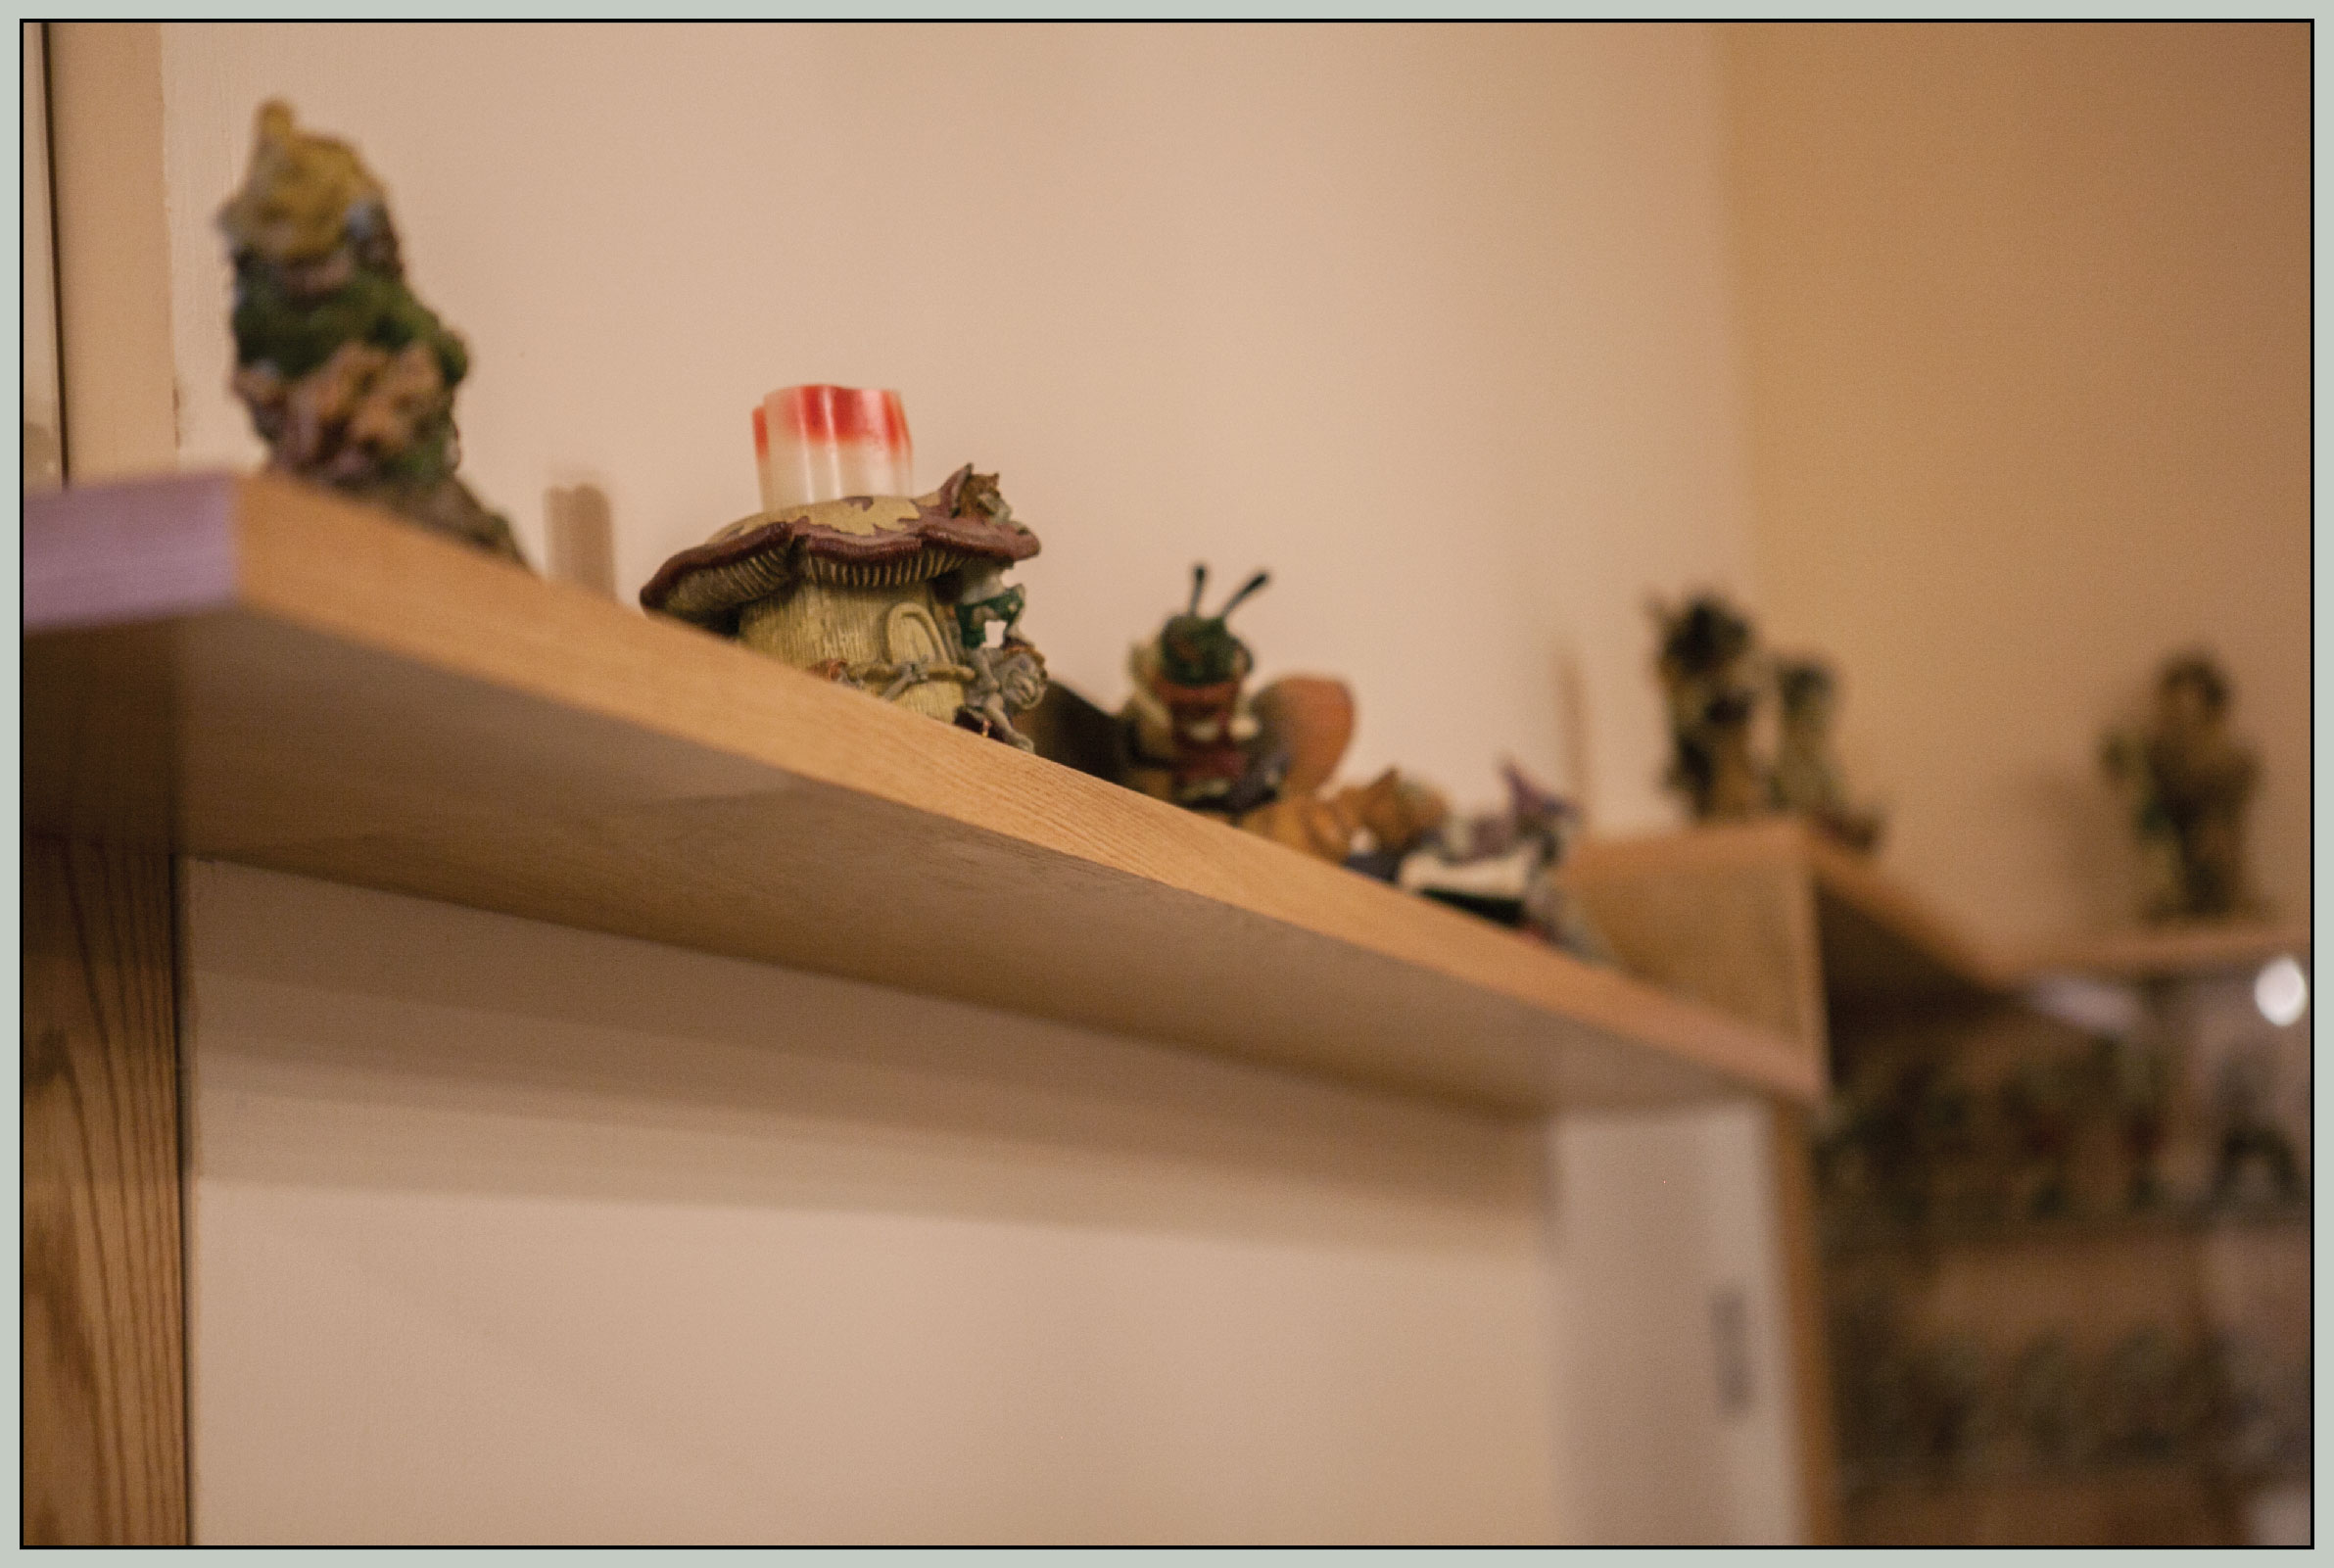 Decorative shelf with figurines